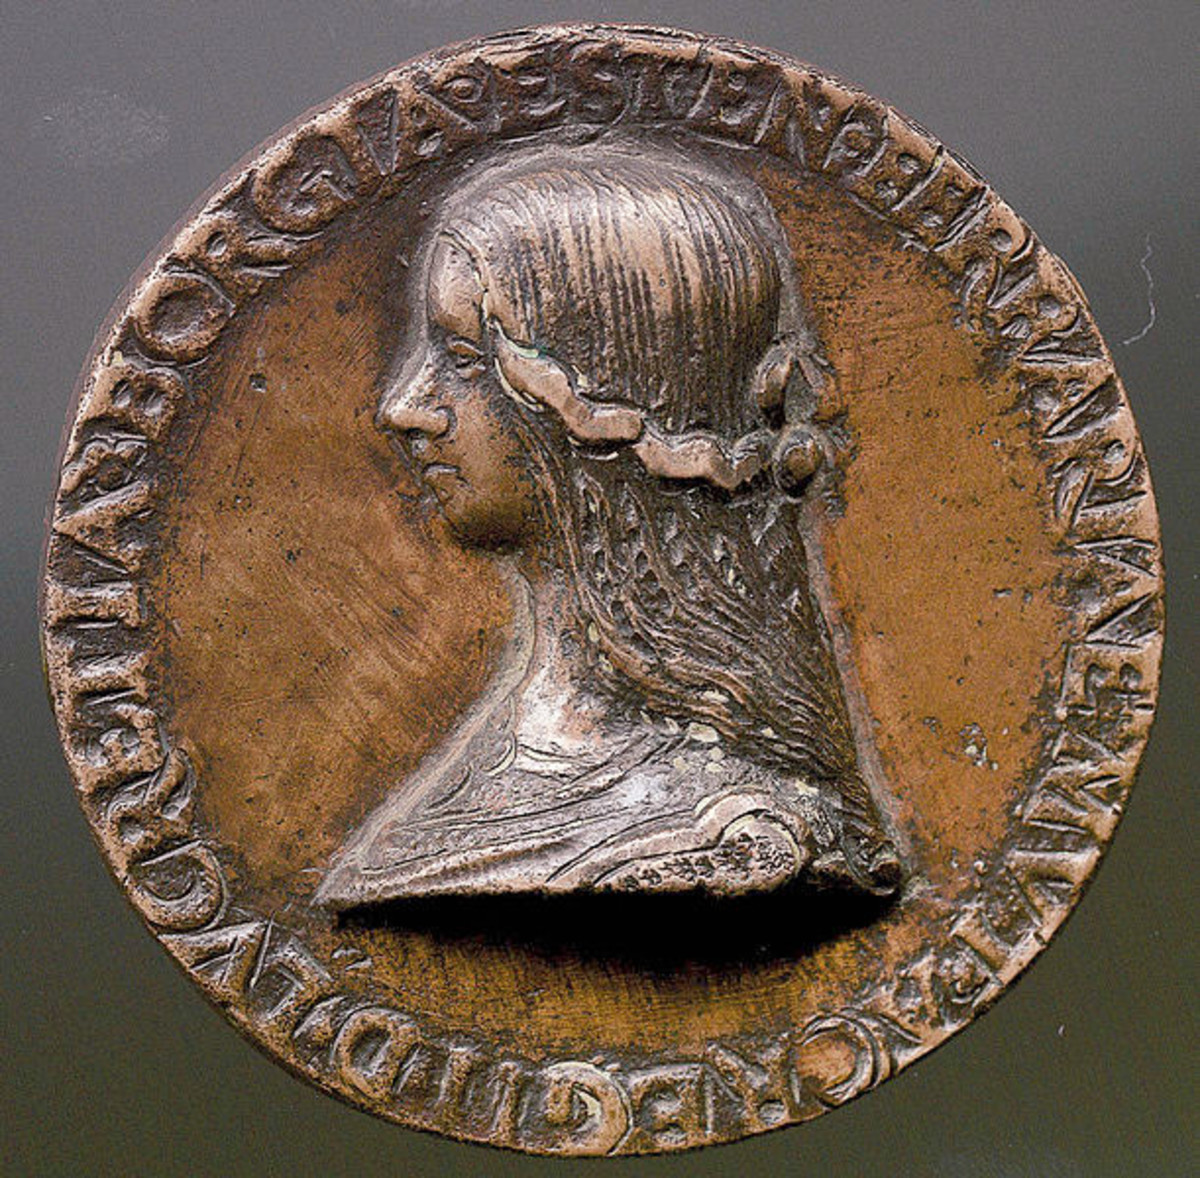 Bronze medal with the bust of Lucrezia Borgia, probably coined when Alfonso d'Este acquired the title of Duke, at the death of the father Ercole (1505).